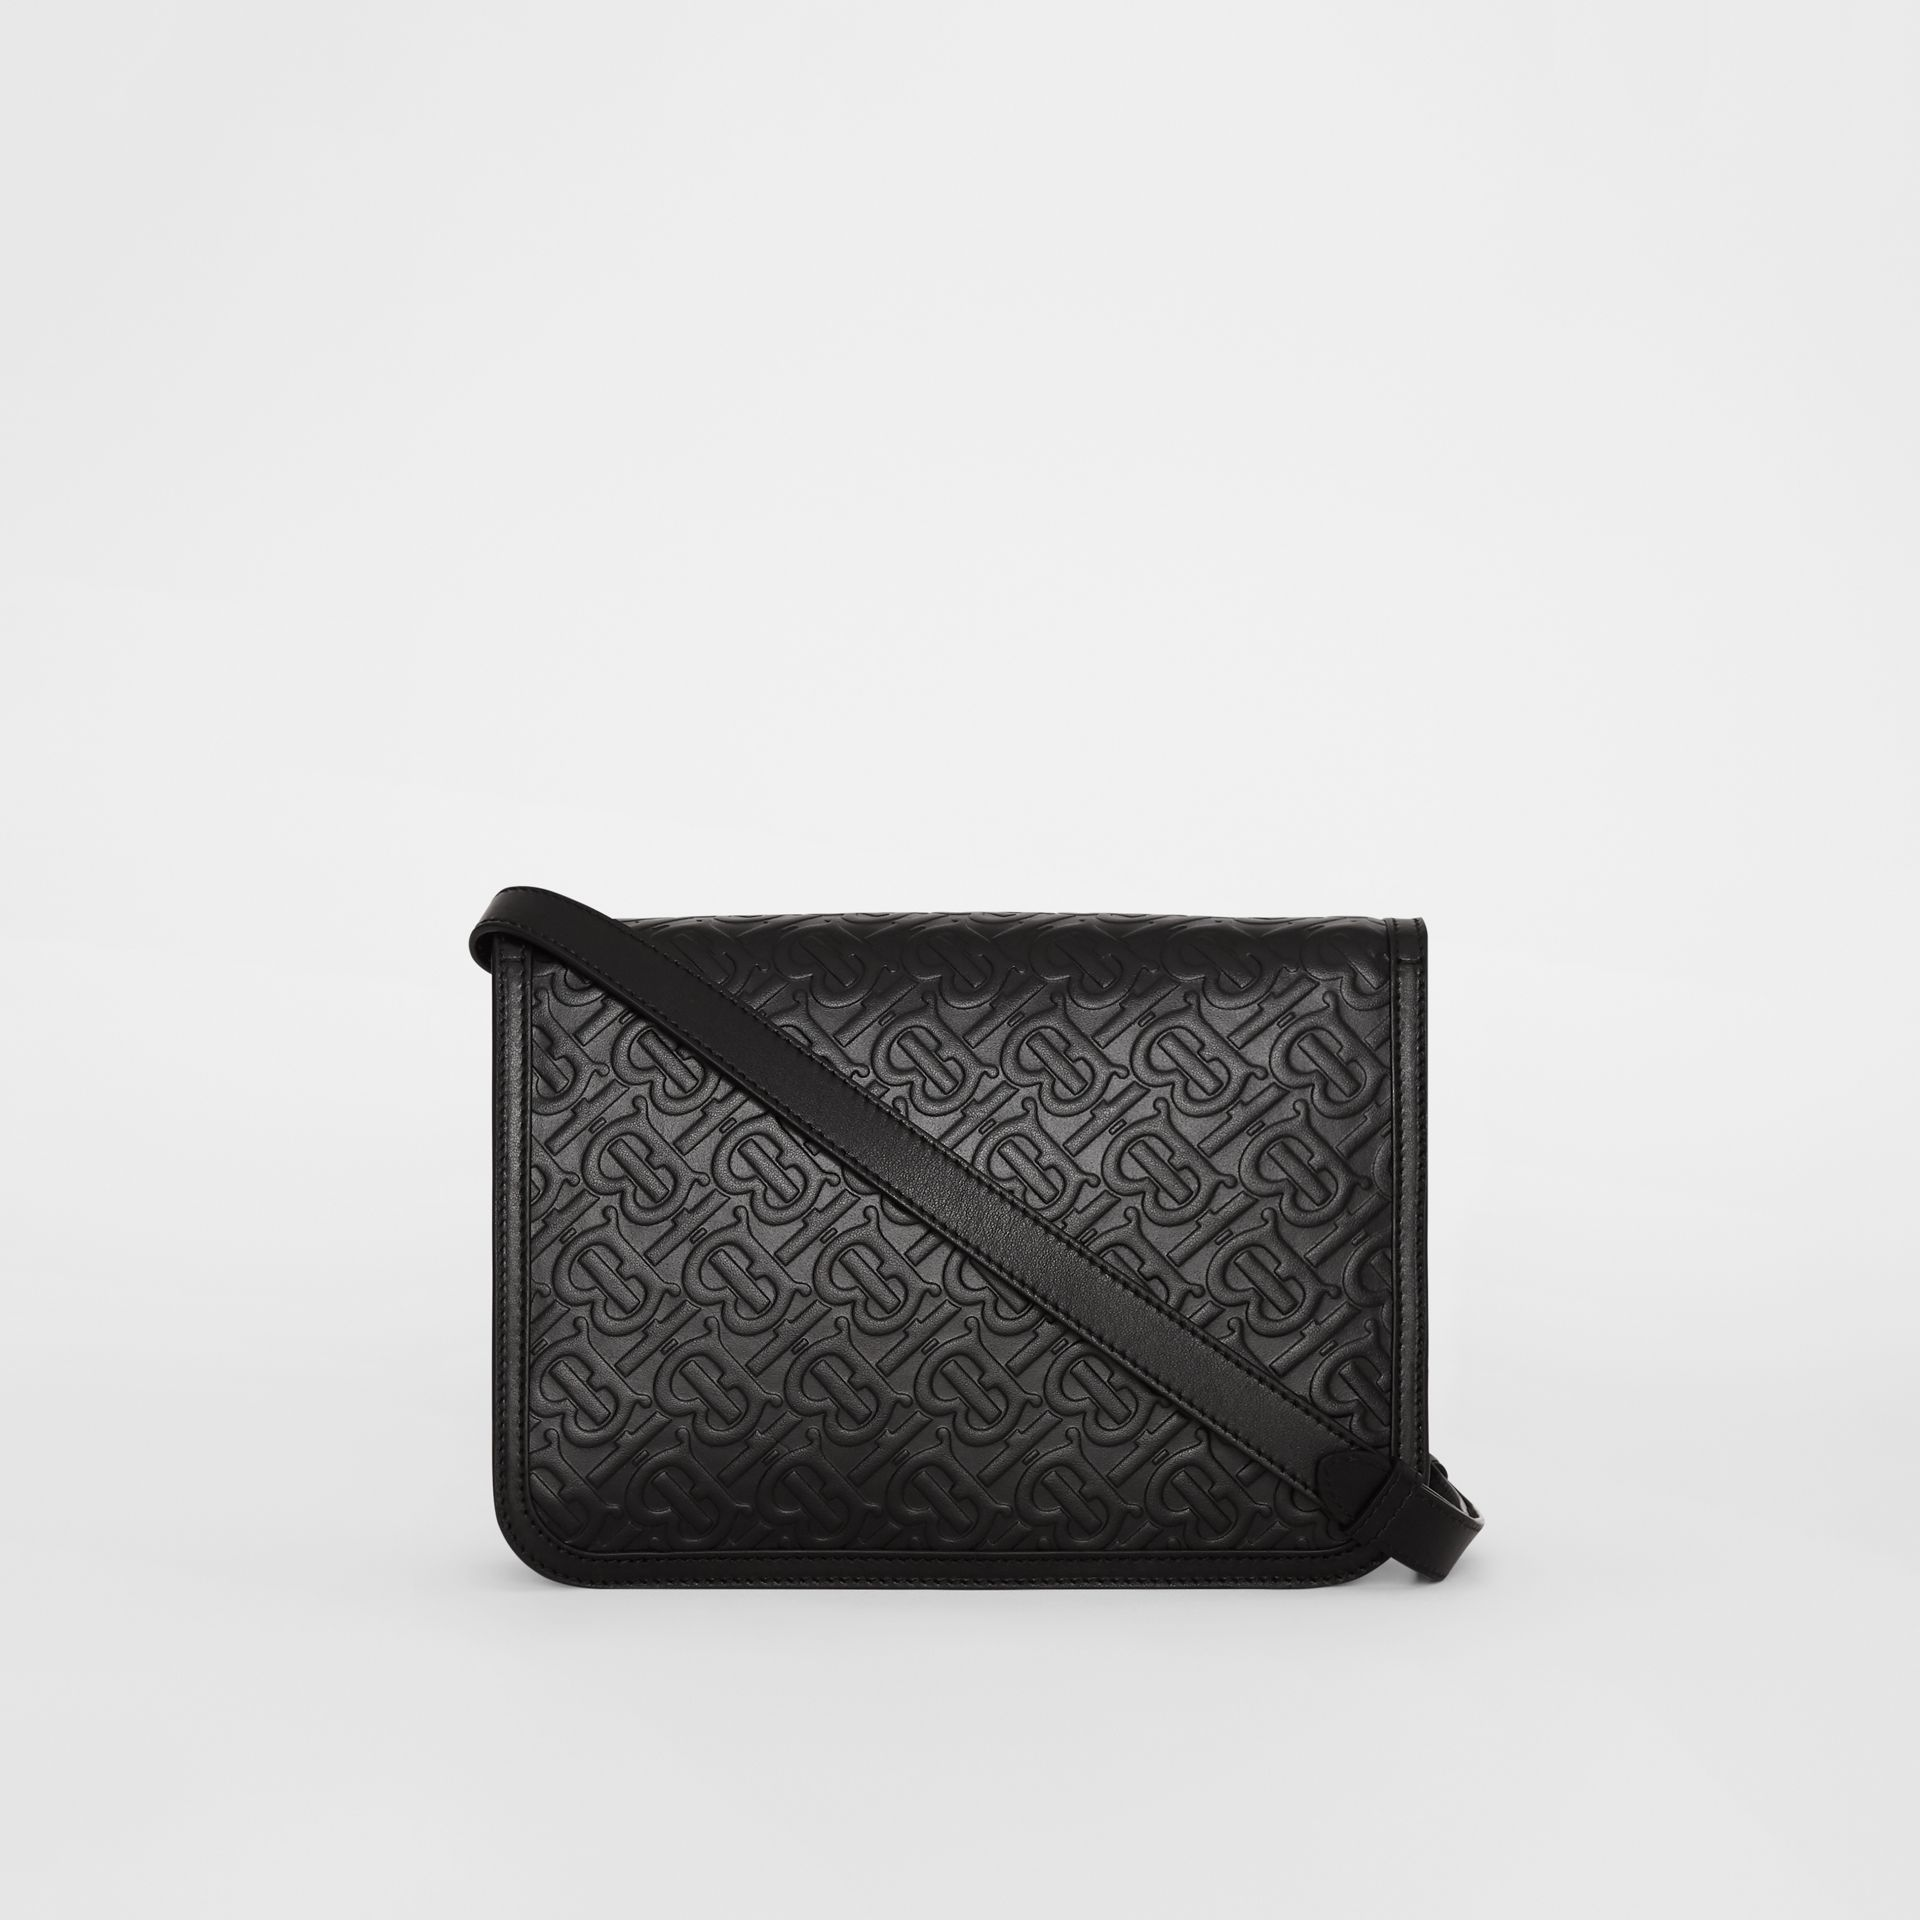 Medium Monogram Leather TB Bag in Black - Women | Burberry - gallery image 7